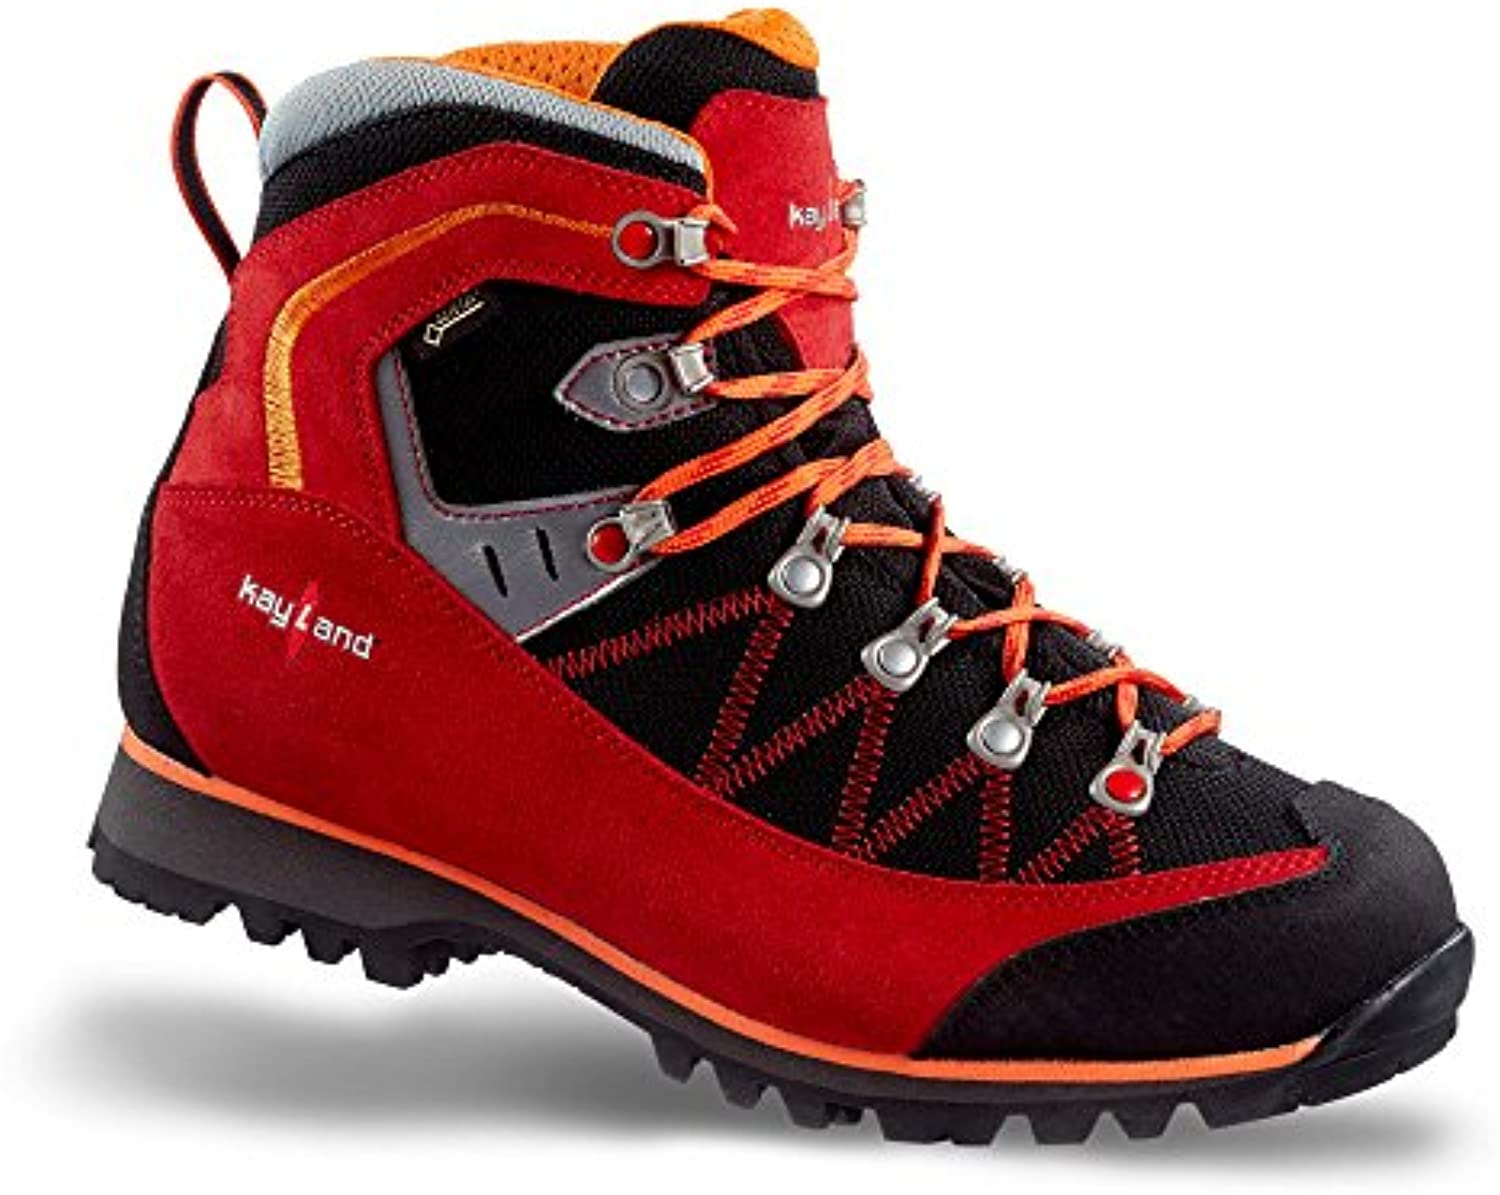 Kayland Shoes Men Hiking Impact W' S GTX DarkGrey